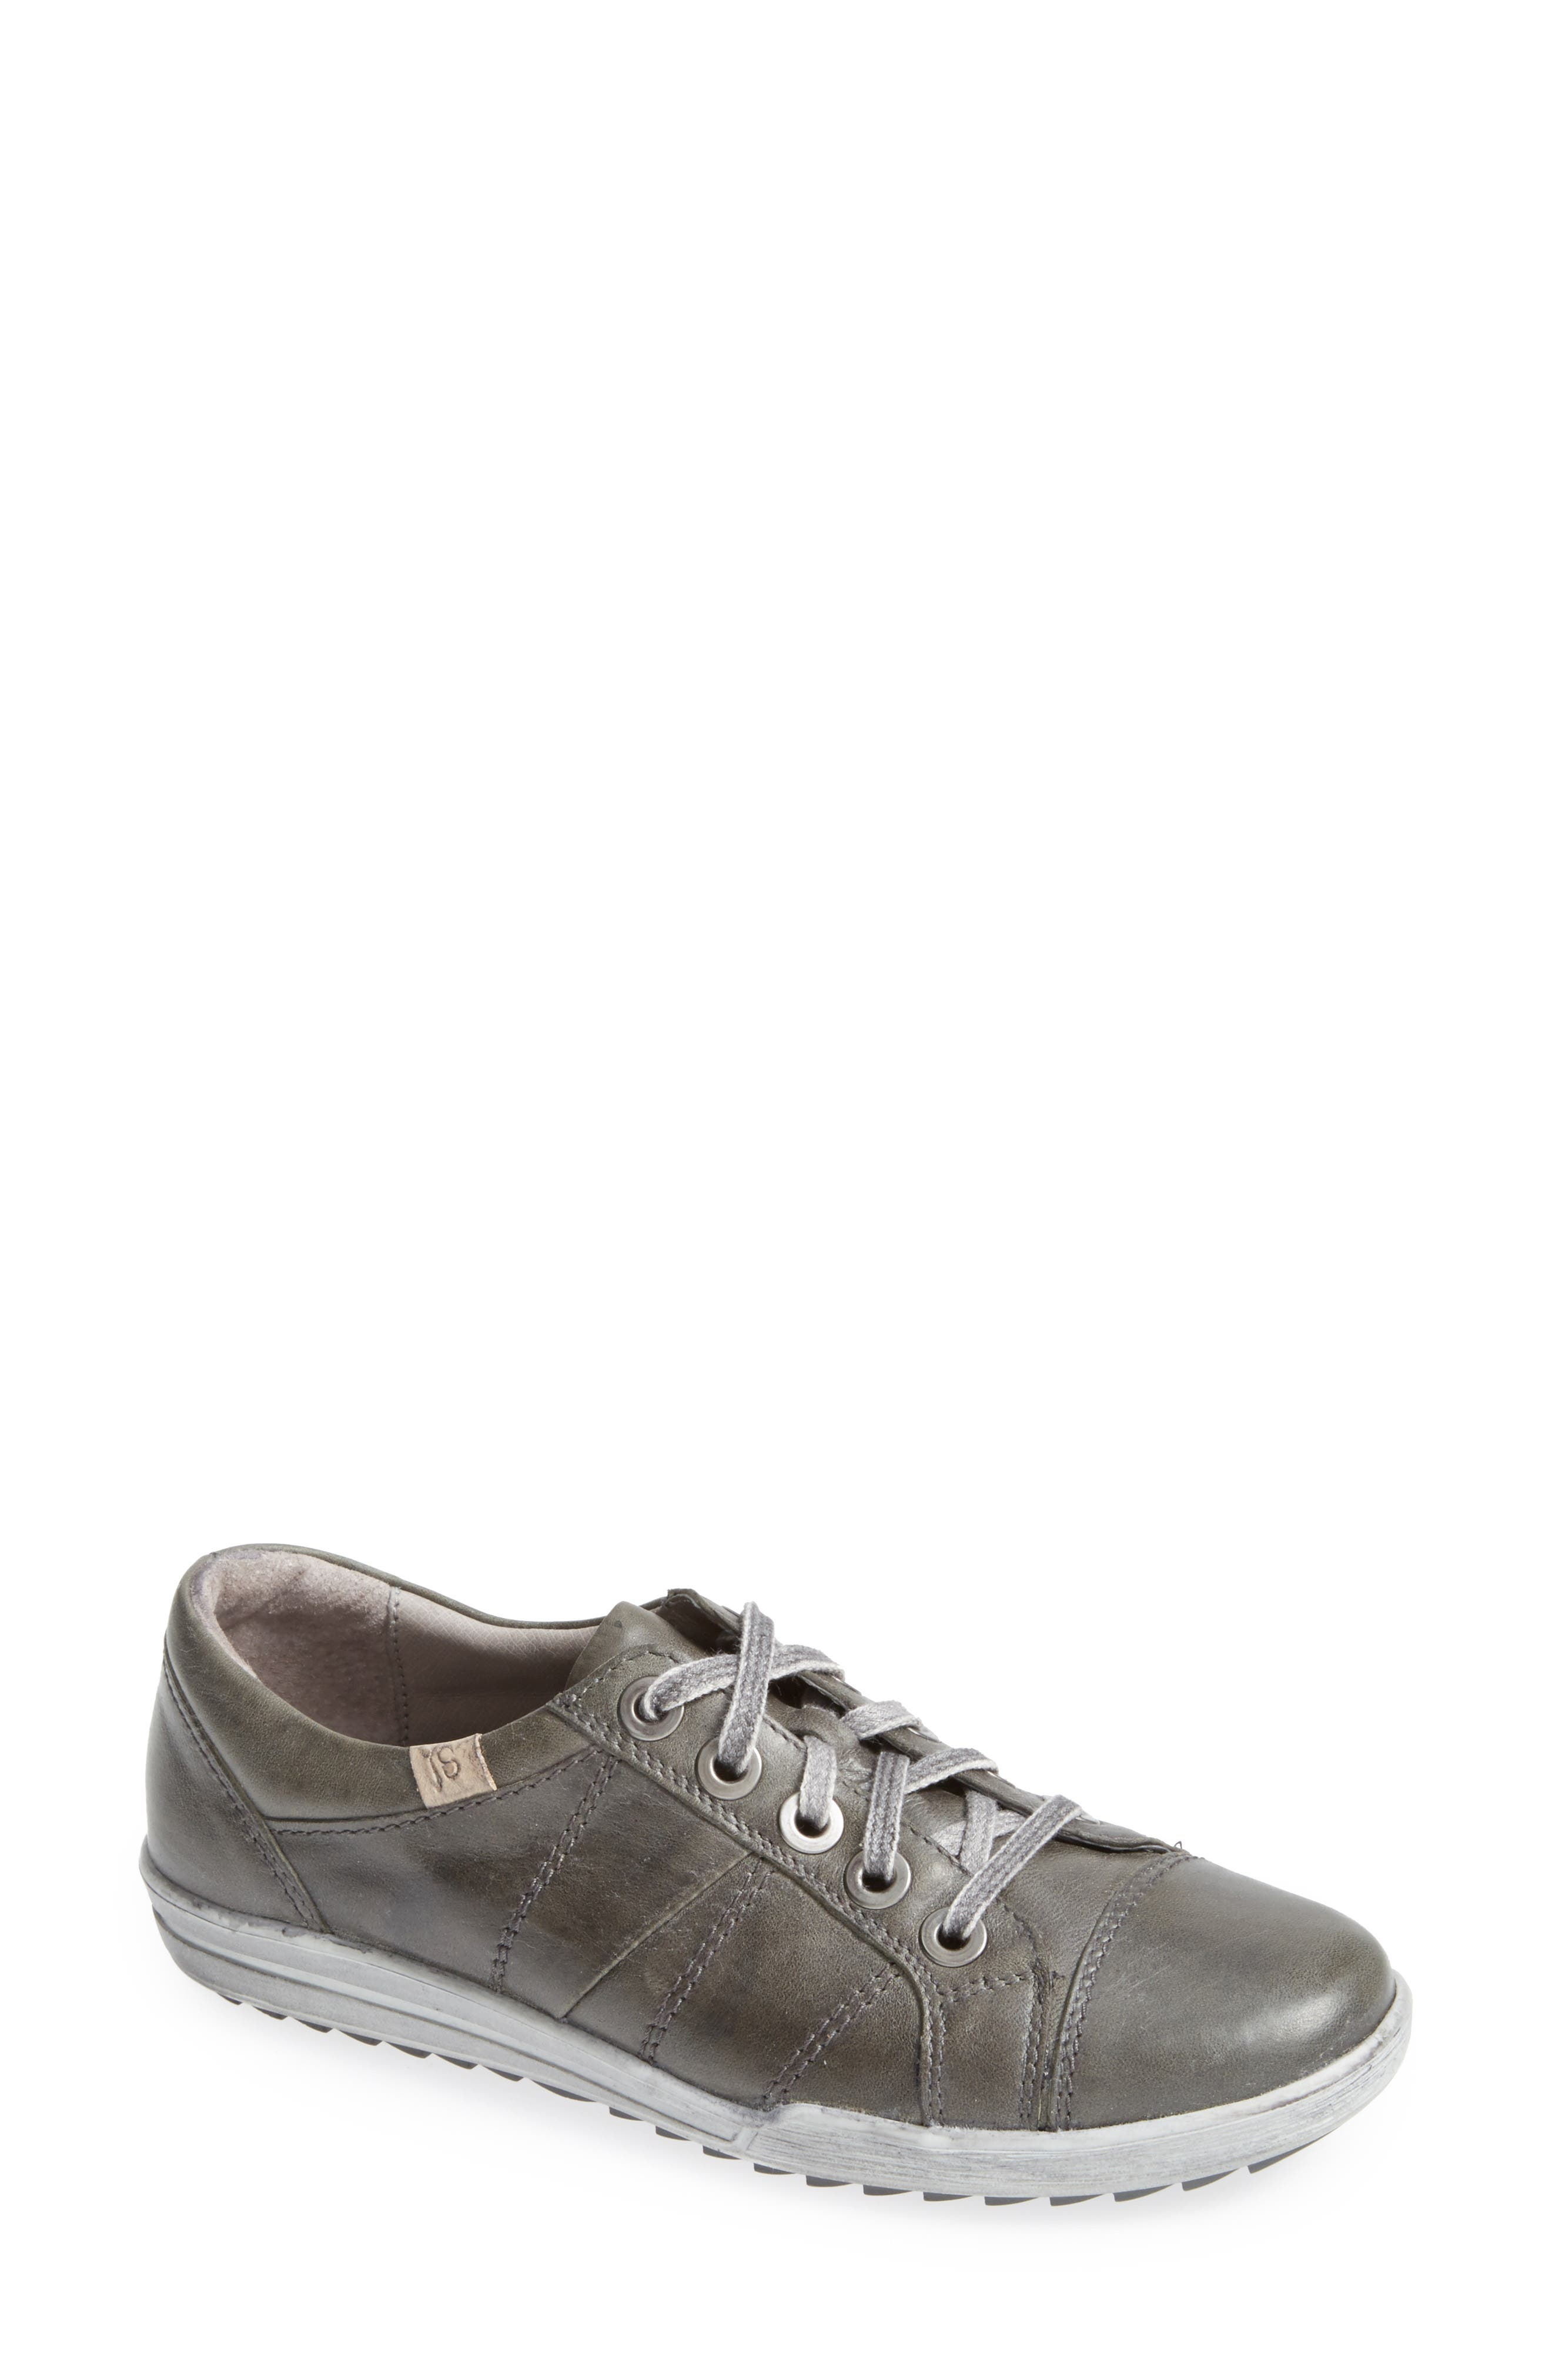 'Dany 05' Leather Sneaker,                             Alternate thumbnail 29, color,